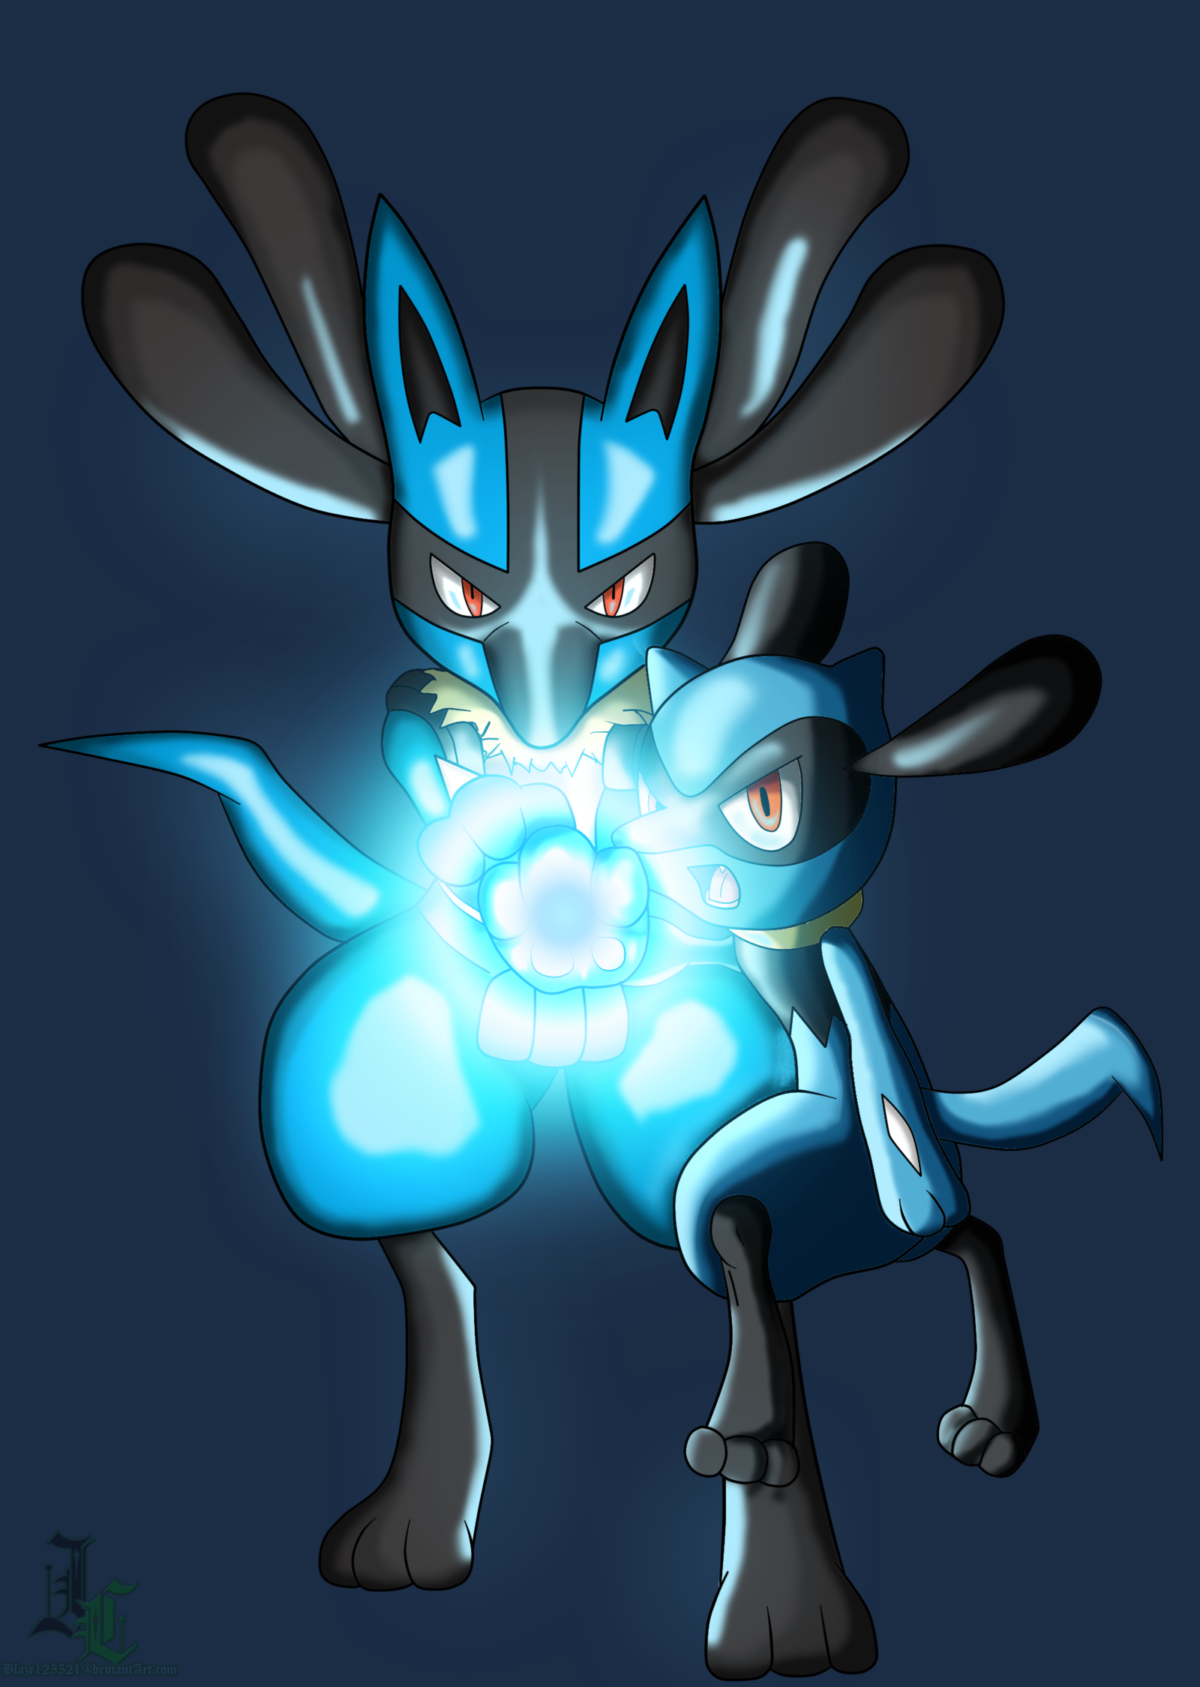 Lucario and Riolu Aura Sphere Colored by JamalC157 on DeviantArt